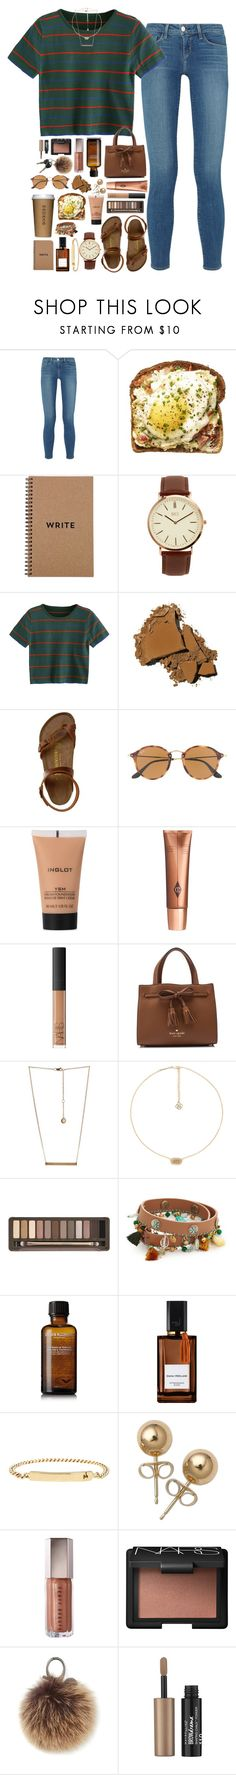 """do something today that your future self will thank you for"" by sdyerrtx ❤ liked on Polyvore featuring L'Agence, Brika, BKE, Bobbi Brown Cosmetics, Birkenstock, Ray-Ban, Inglot, Charlotte Tilbury, NARS Cosmetics and Kate Spade"